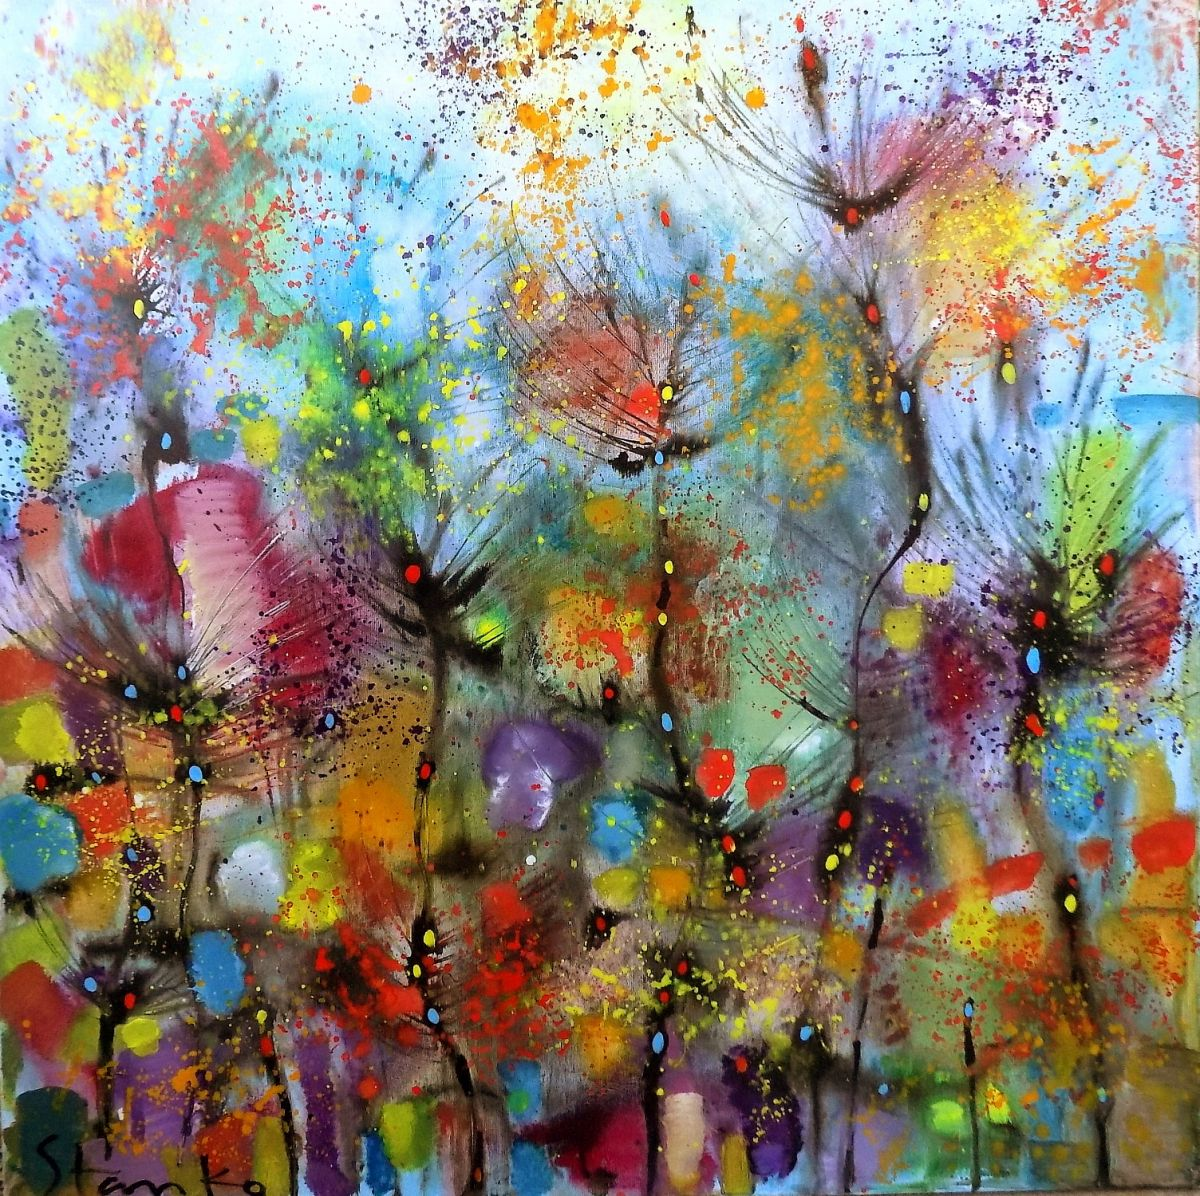 Abstract Landscape Xxxi By Stanislav Bojankov Sell Buy Original Paintings Online